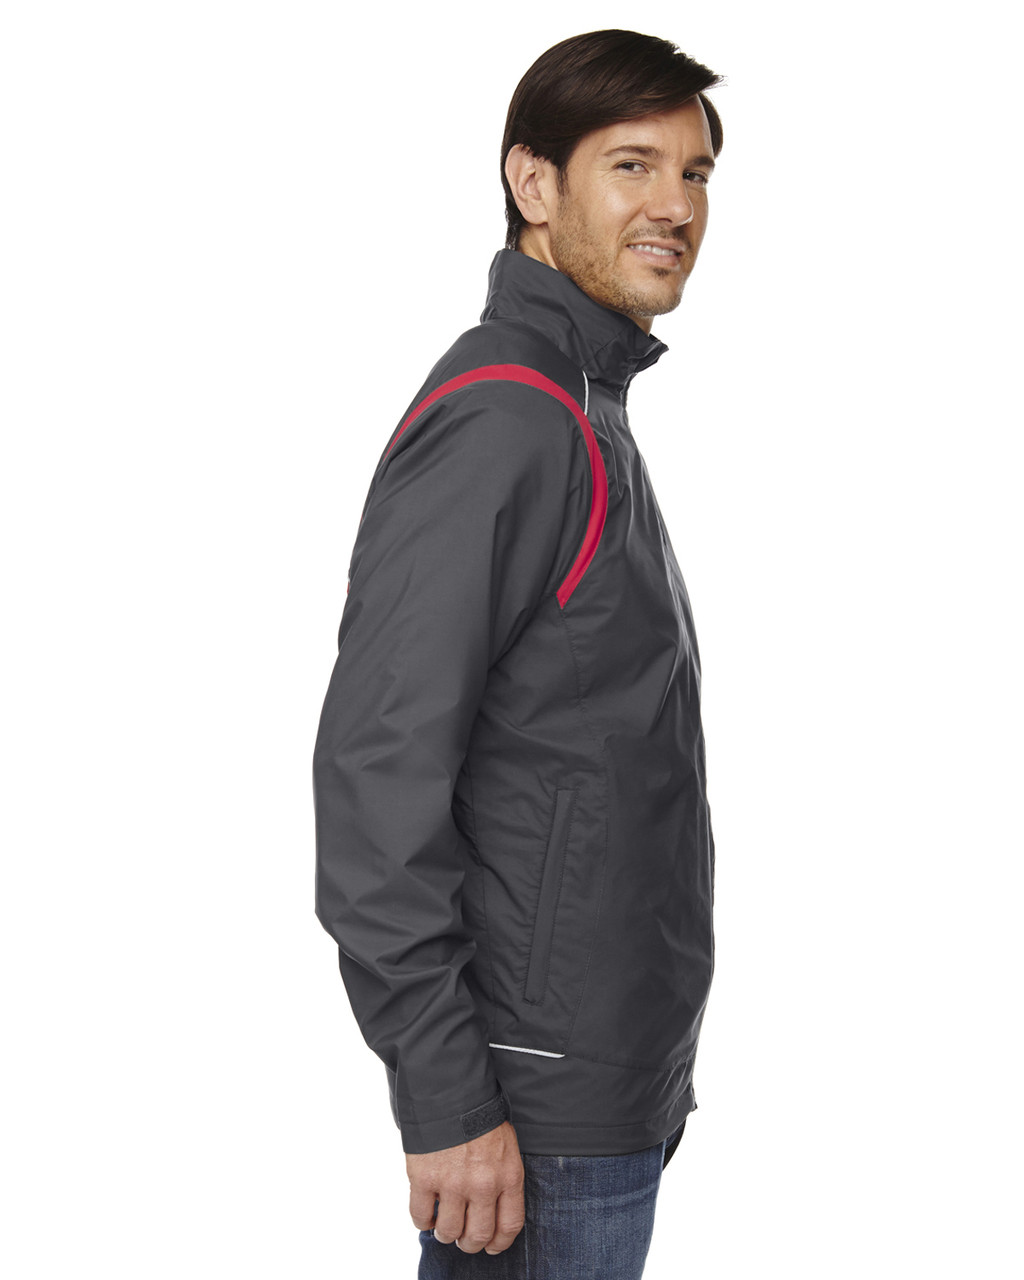 Black/Silk-side 88167 North End Venture Lightweight Mini Ottoman Jacket | Blankclothing.ca